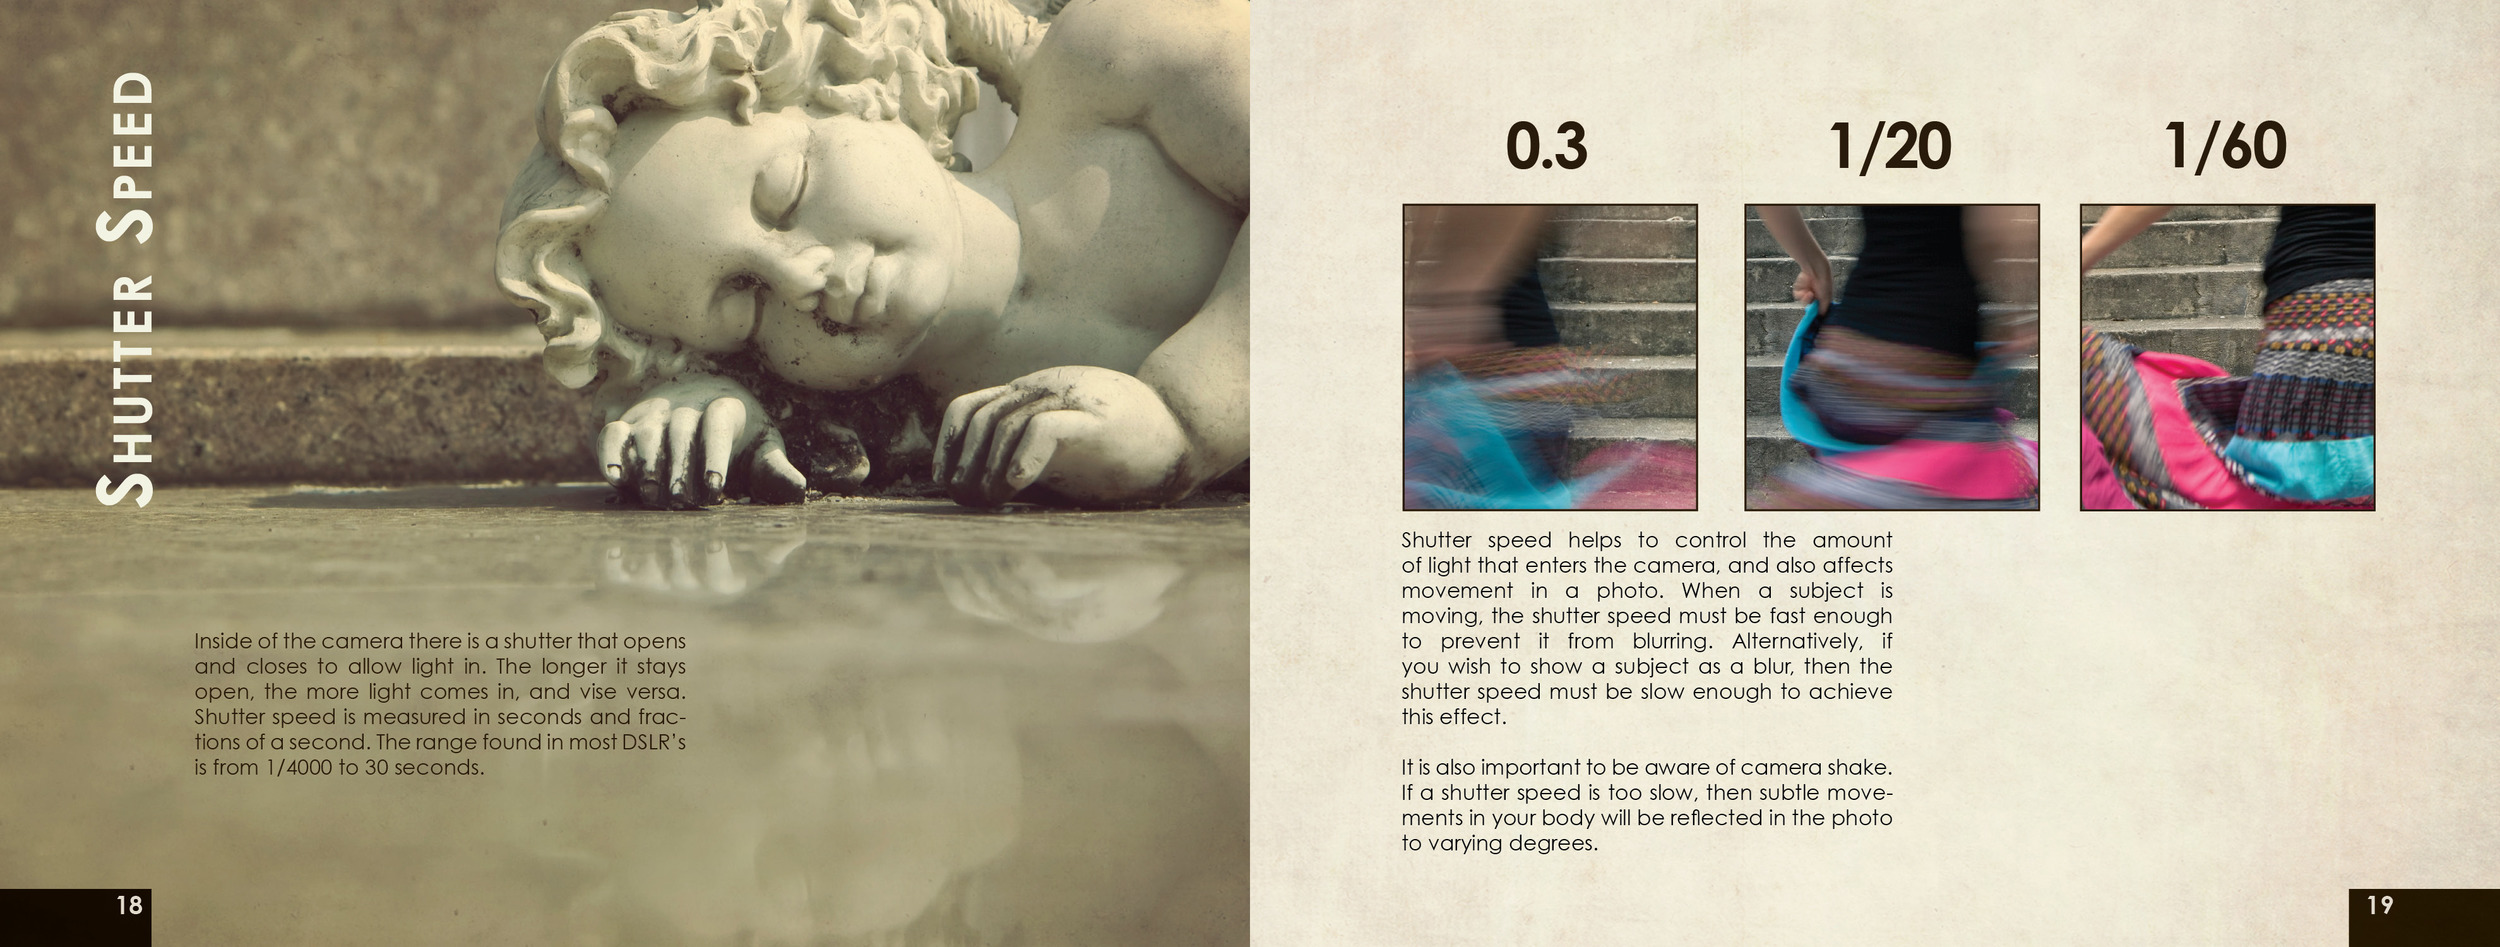 001-09_Tutorial-Book_d2-pages11.jpg